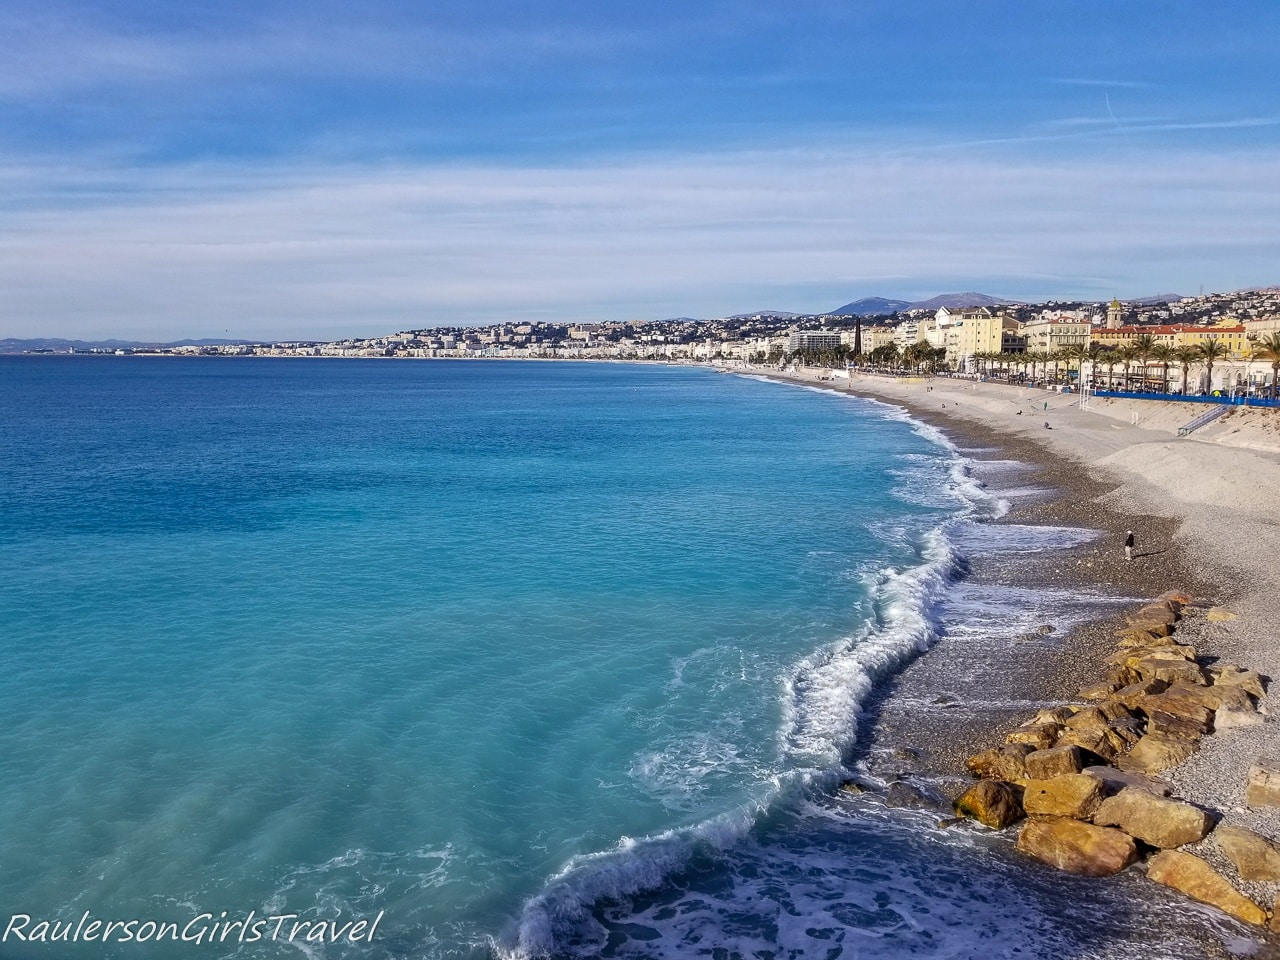 View of beach in Nice